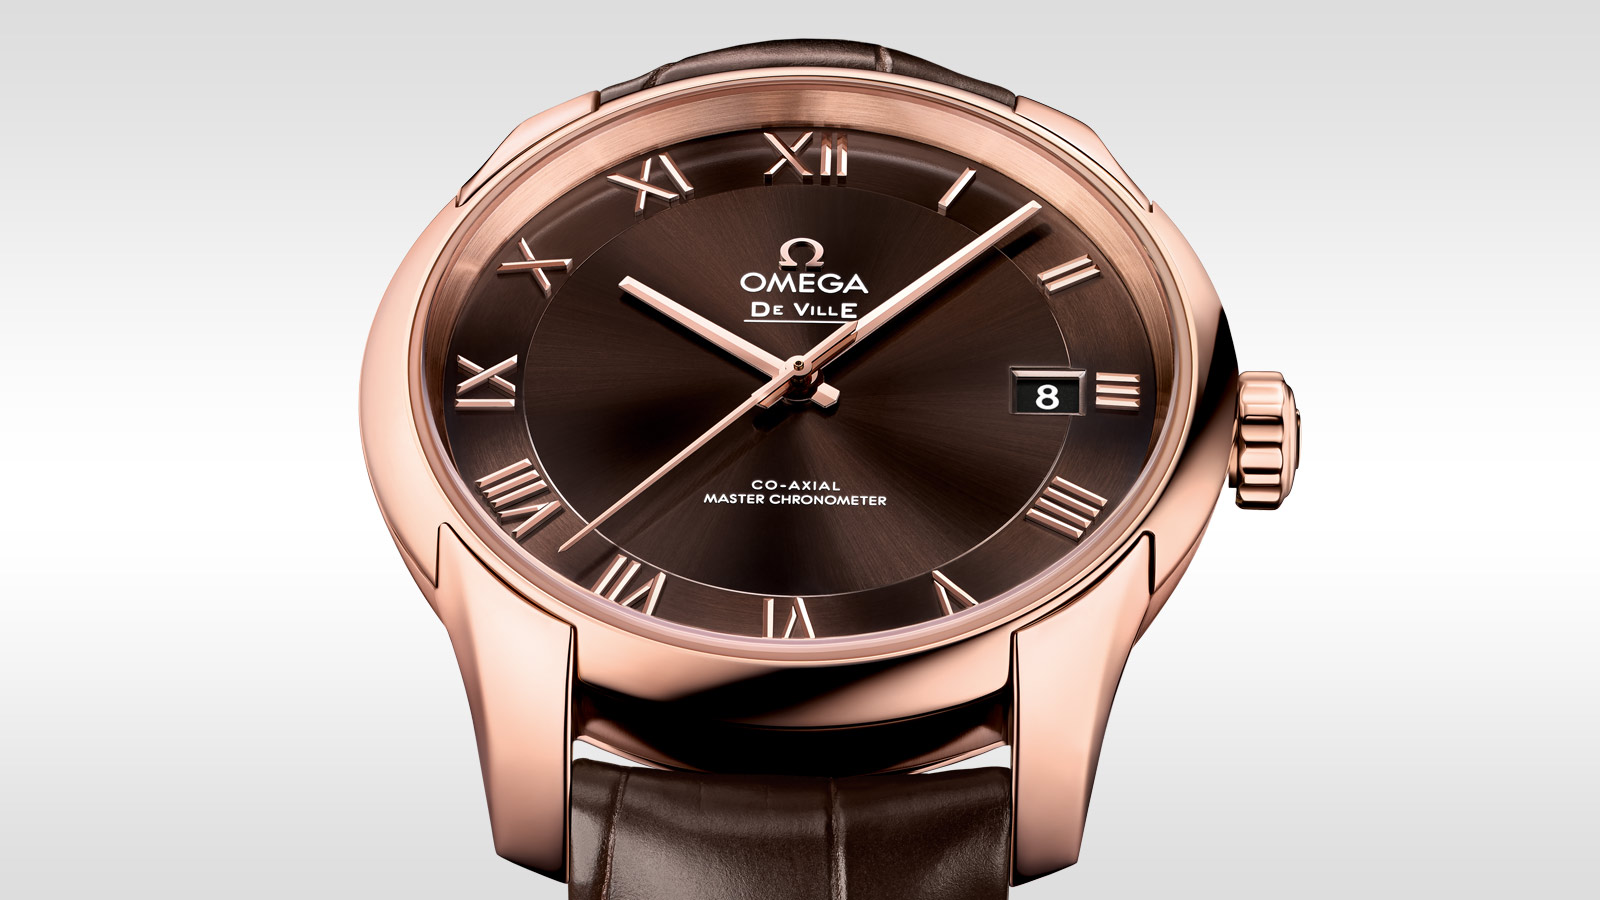 De Ville Hour Vision Hour Vision Omega Co‑Axial Master Chronometer 41 mm - 433.53.41.21.13.001 - Afficher 1